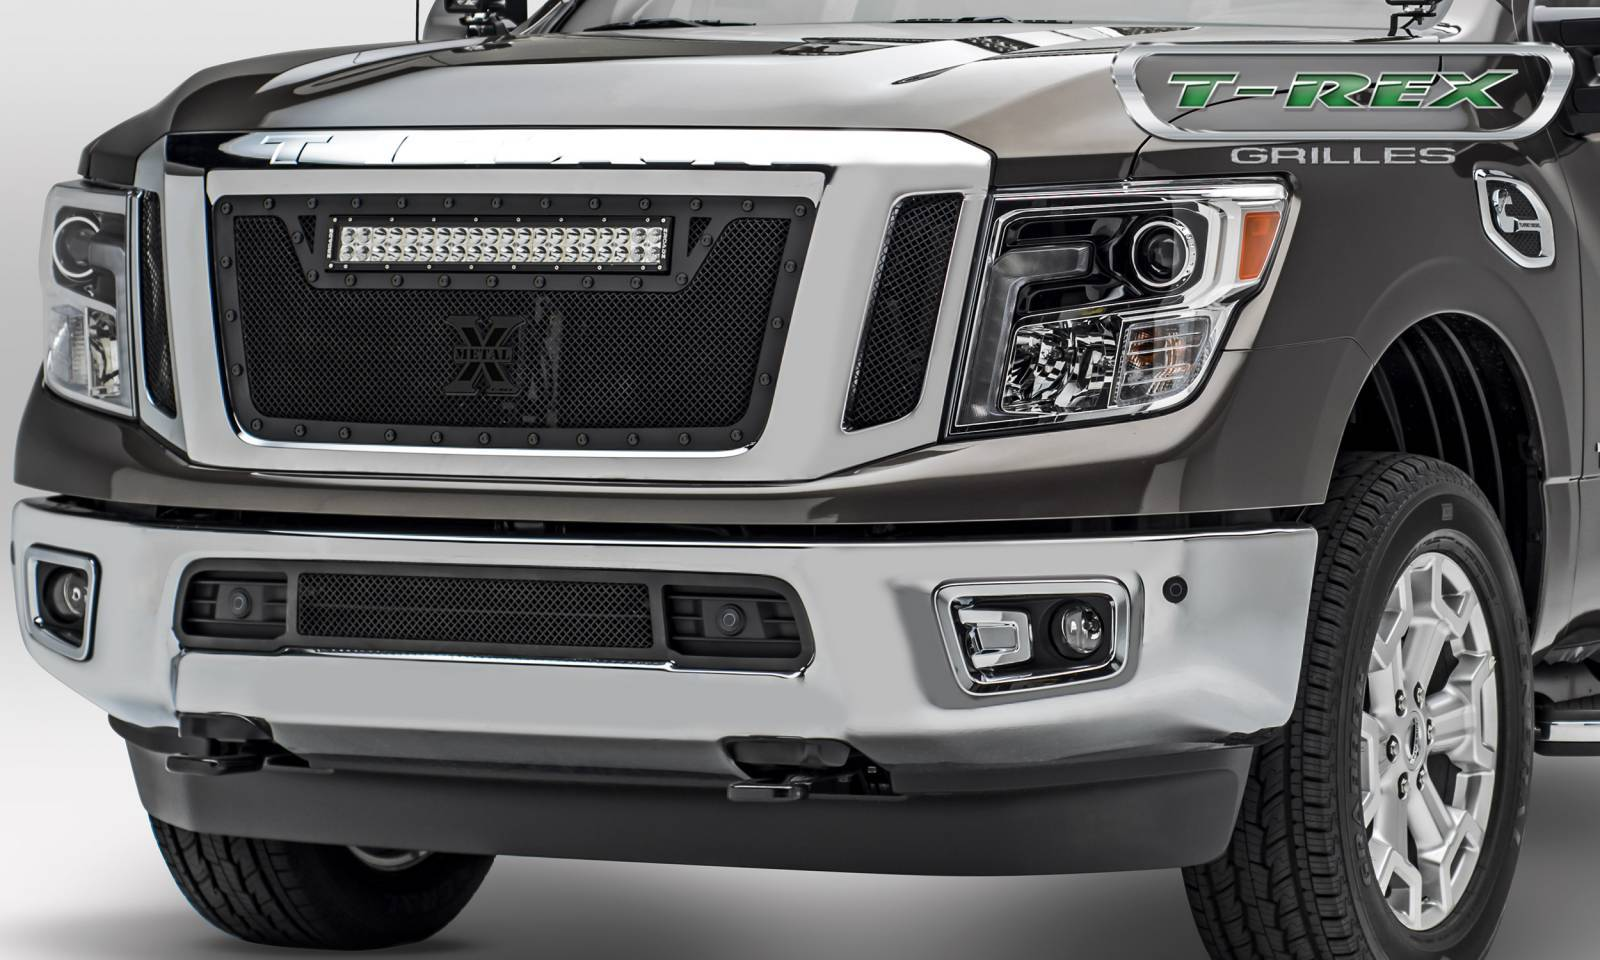 T-REX Nissan Titan - Stealth Torch w/ (1) ZROADZ LED Light Bar - 3 Pc Insert - Main Grille - Black - Pt # 6317851-BR